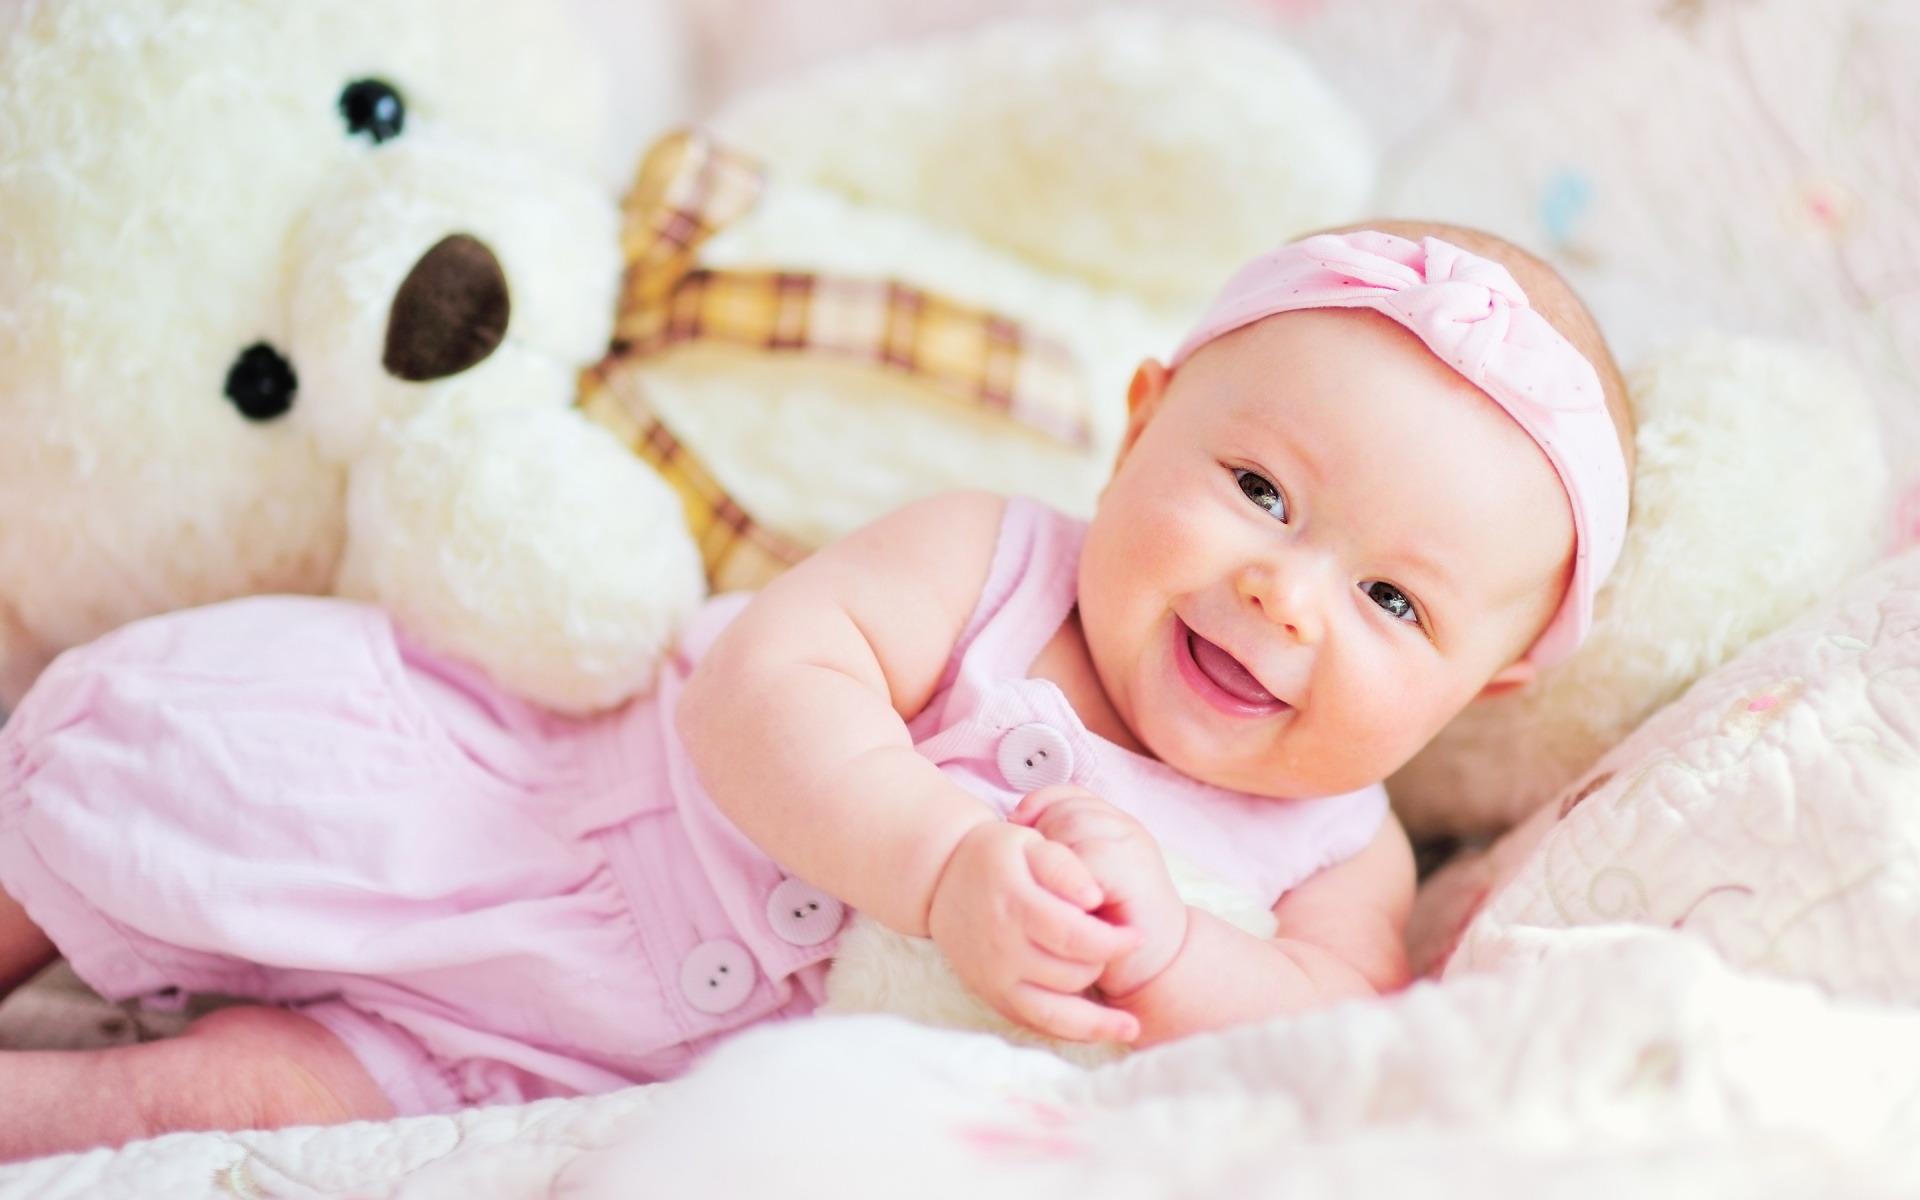 Cute Baby Wallpapers Free Download: Cute Baby Teddy Bear Wallpapers In Jpg Format For Free